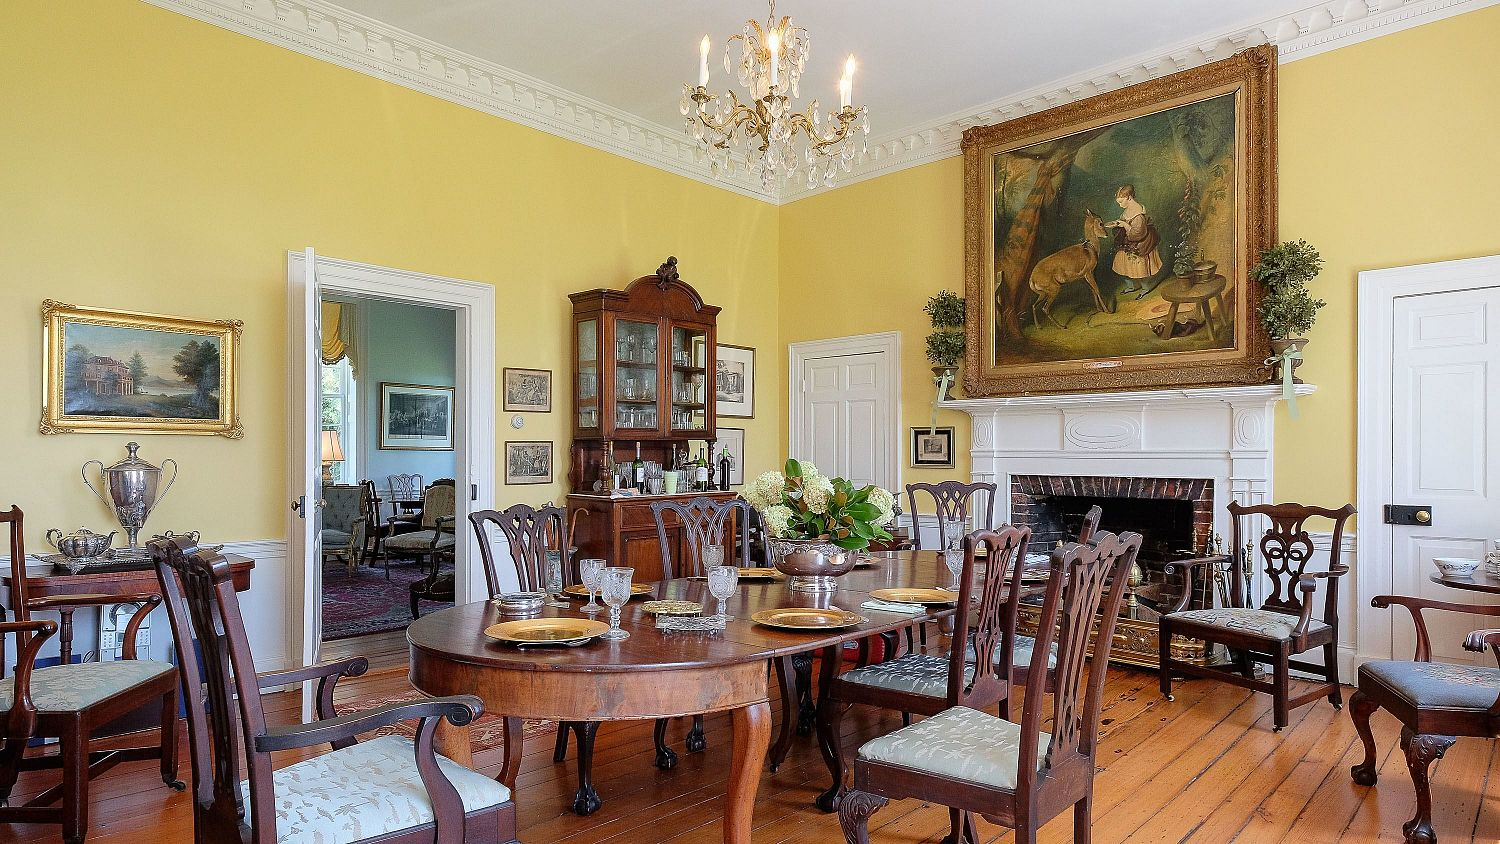 The dining room of the Mulberry Hill manor house